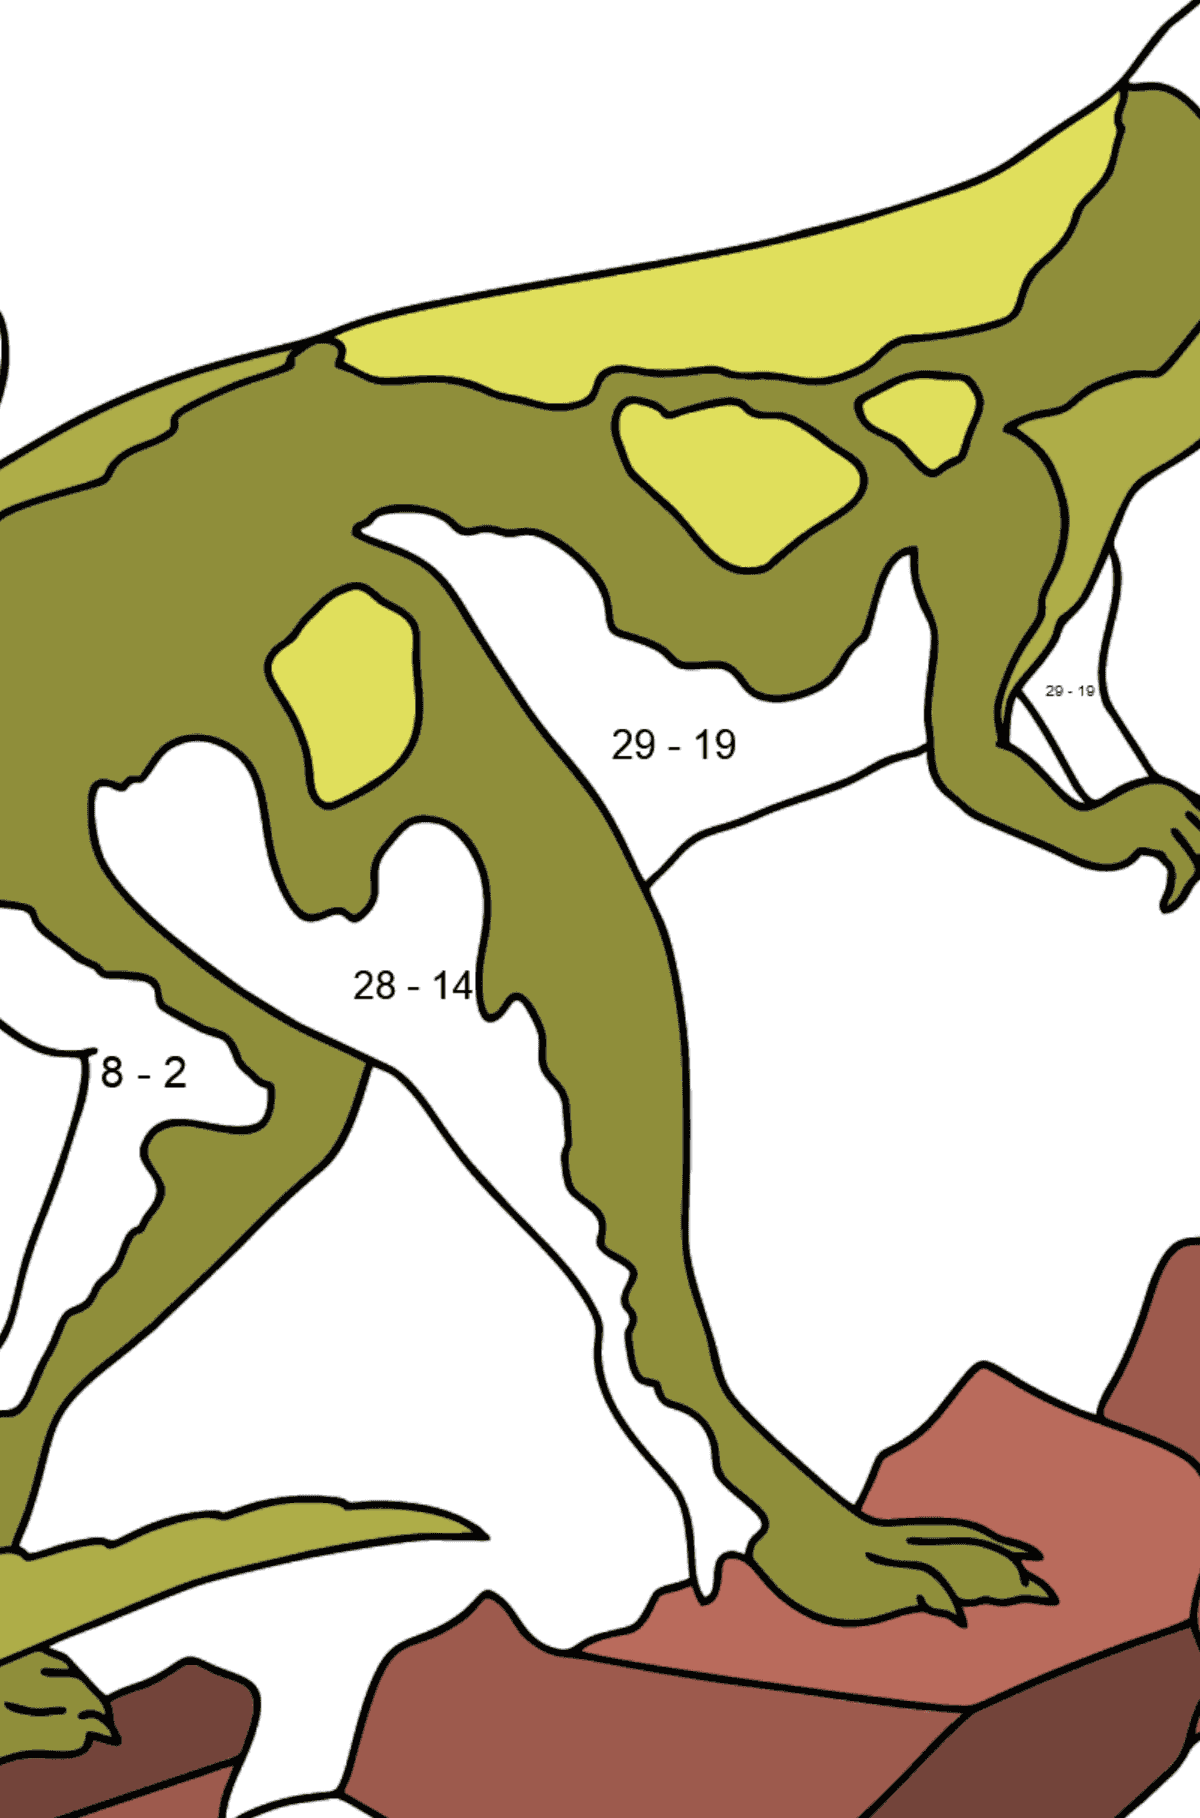 Coloring Page - Tyrannosaurus - The Most Popular Dinosaur on the Planet - Math Coloring - Subtraction for Kids